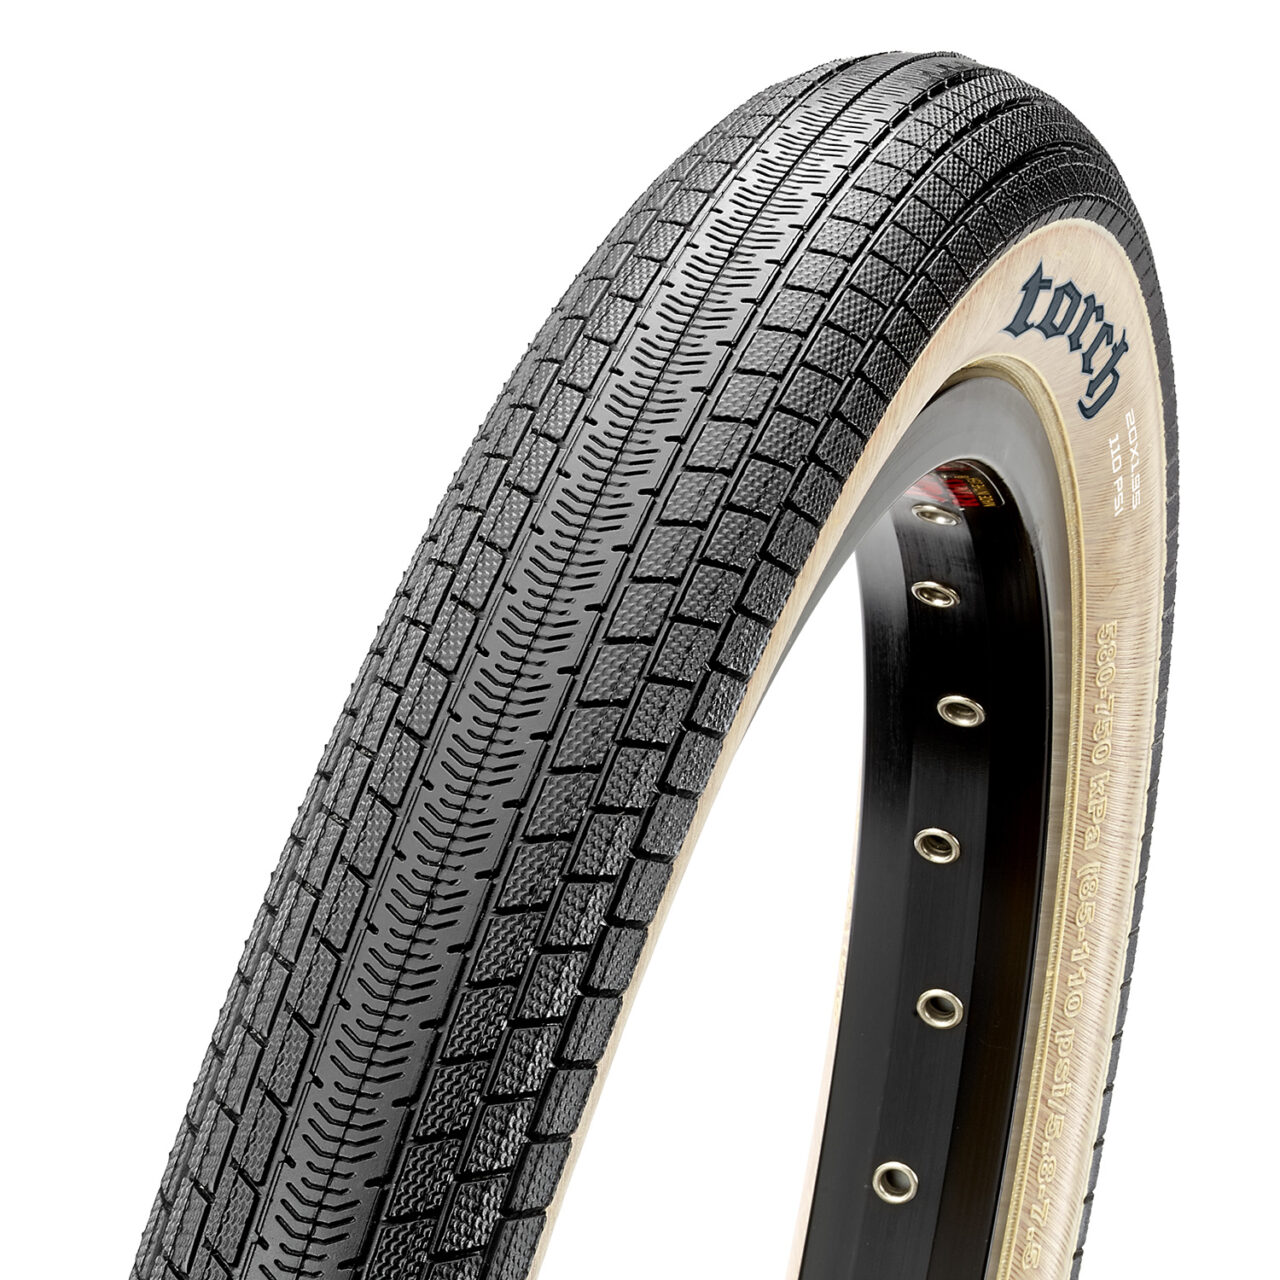 Maxxis tan wall Torch bicycle tire